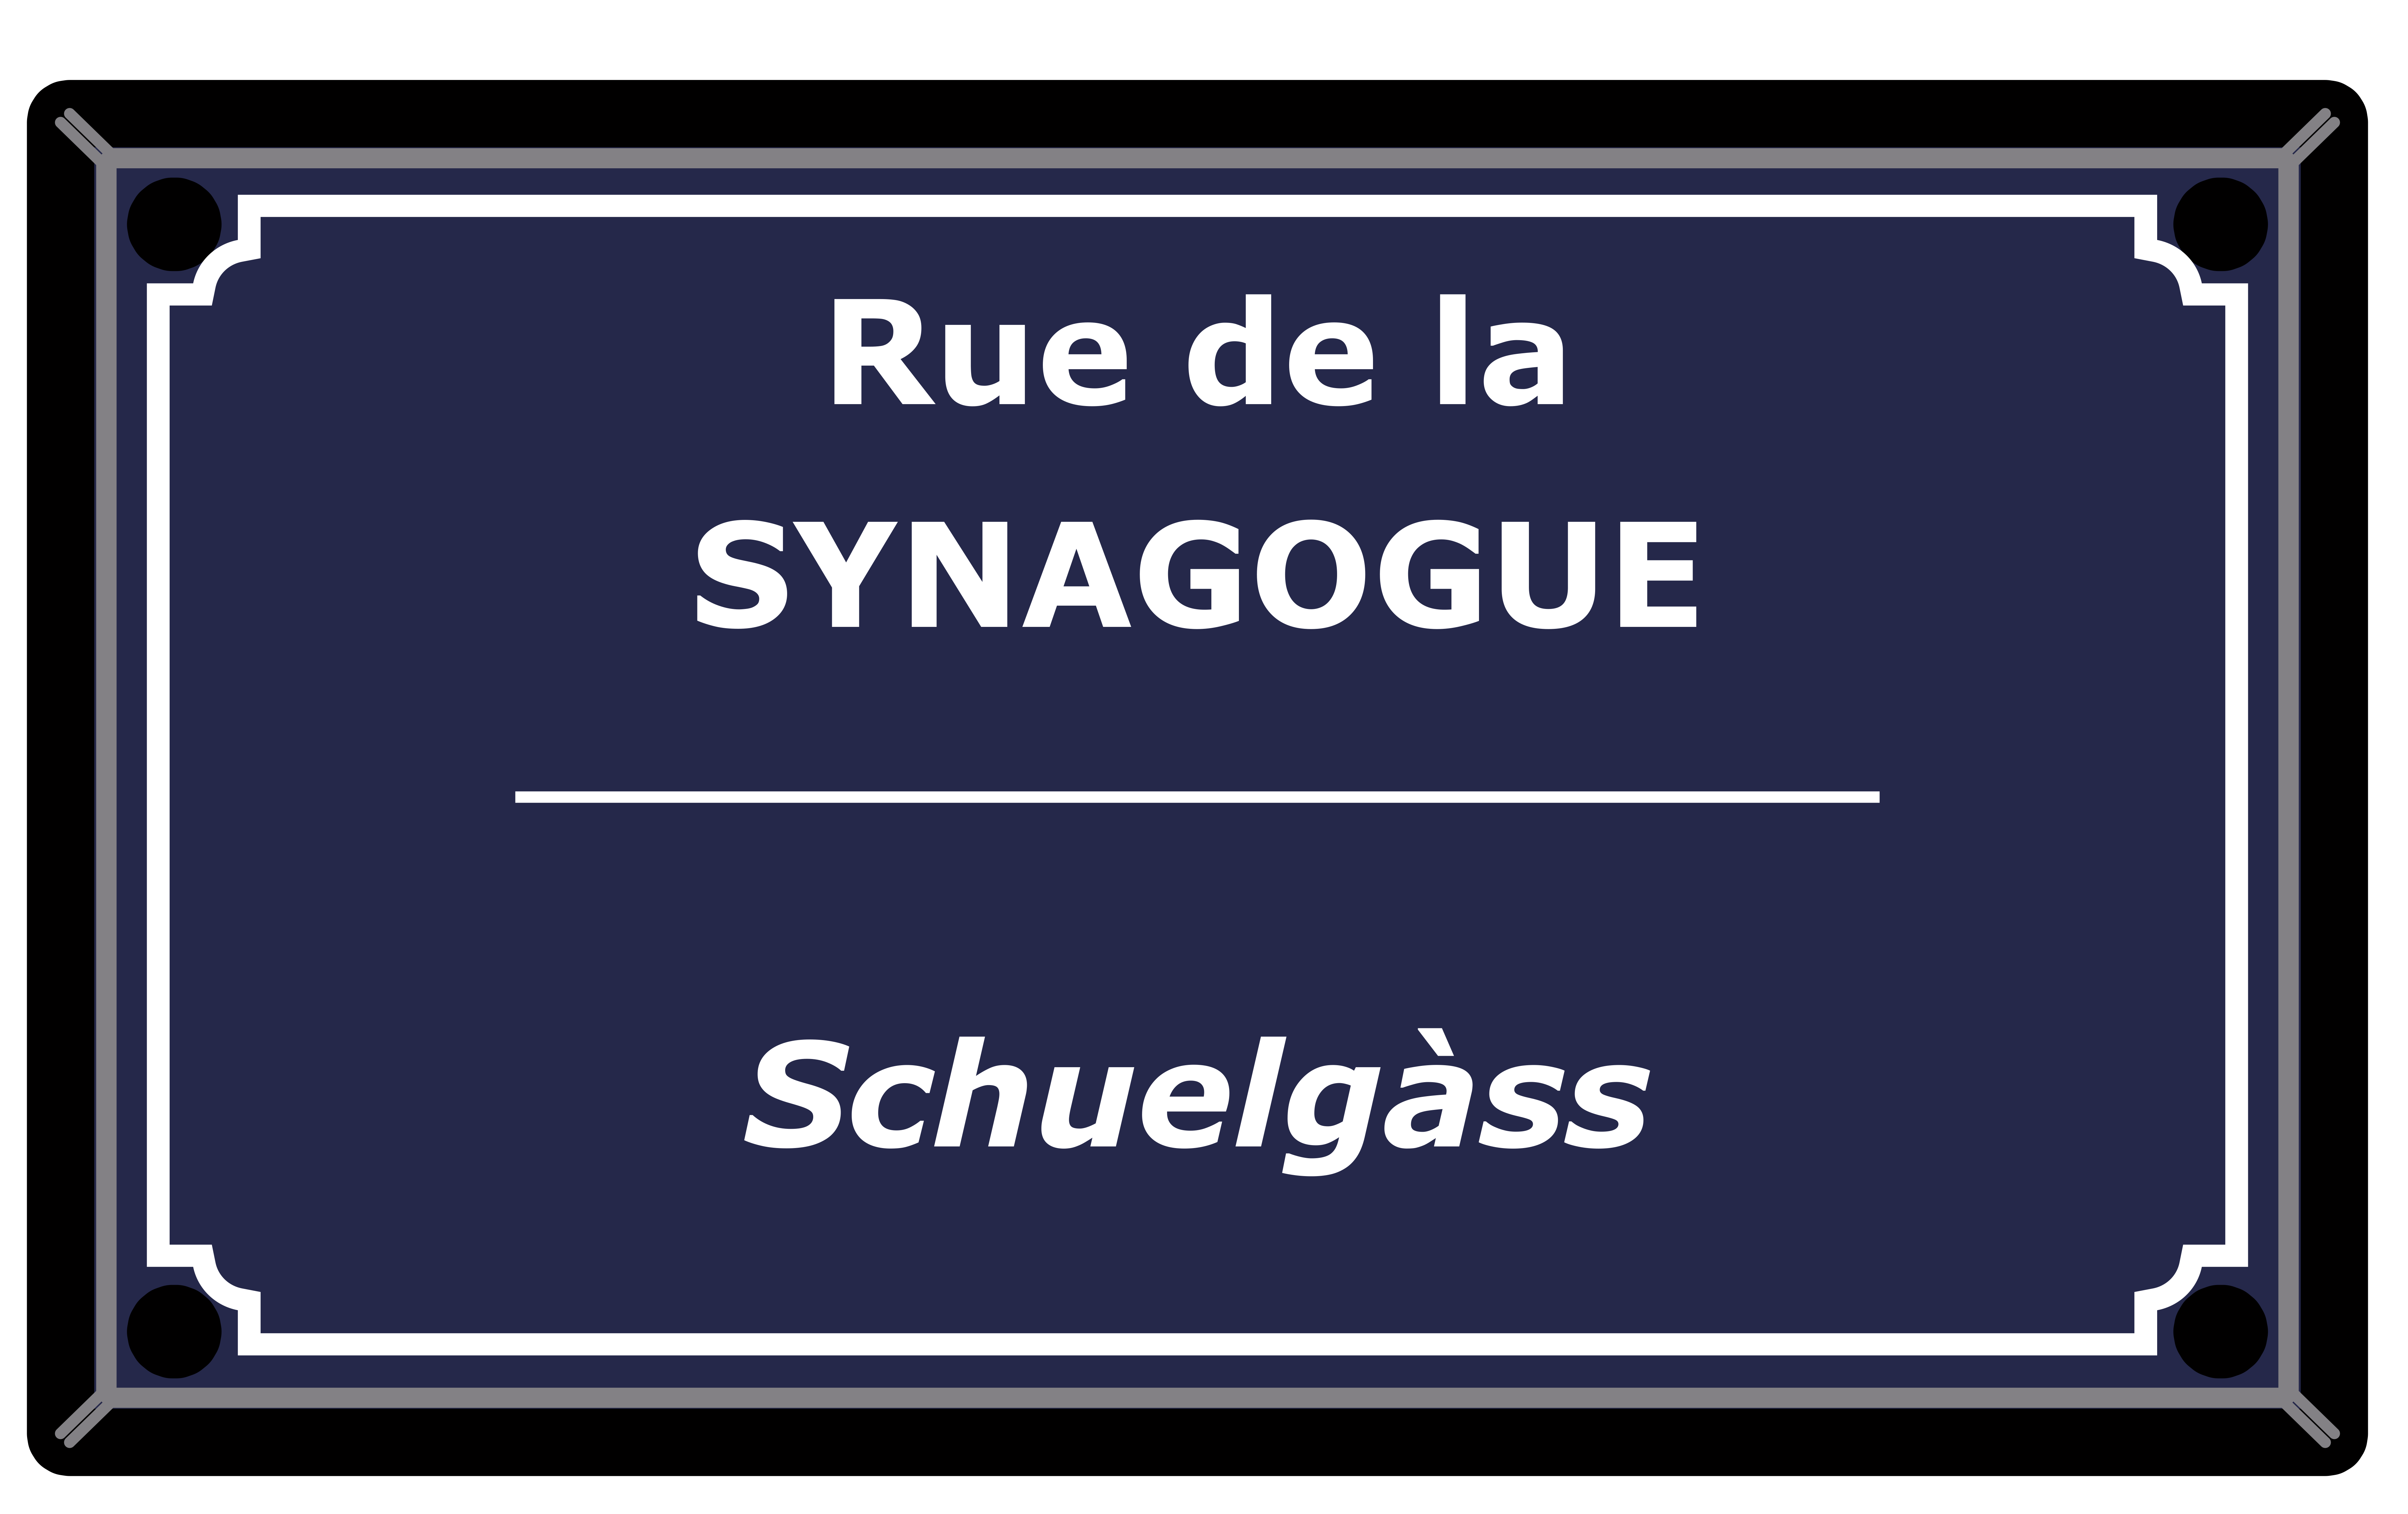 Rue de la Synagogue